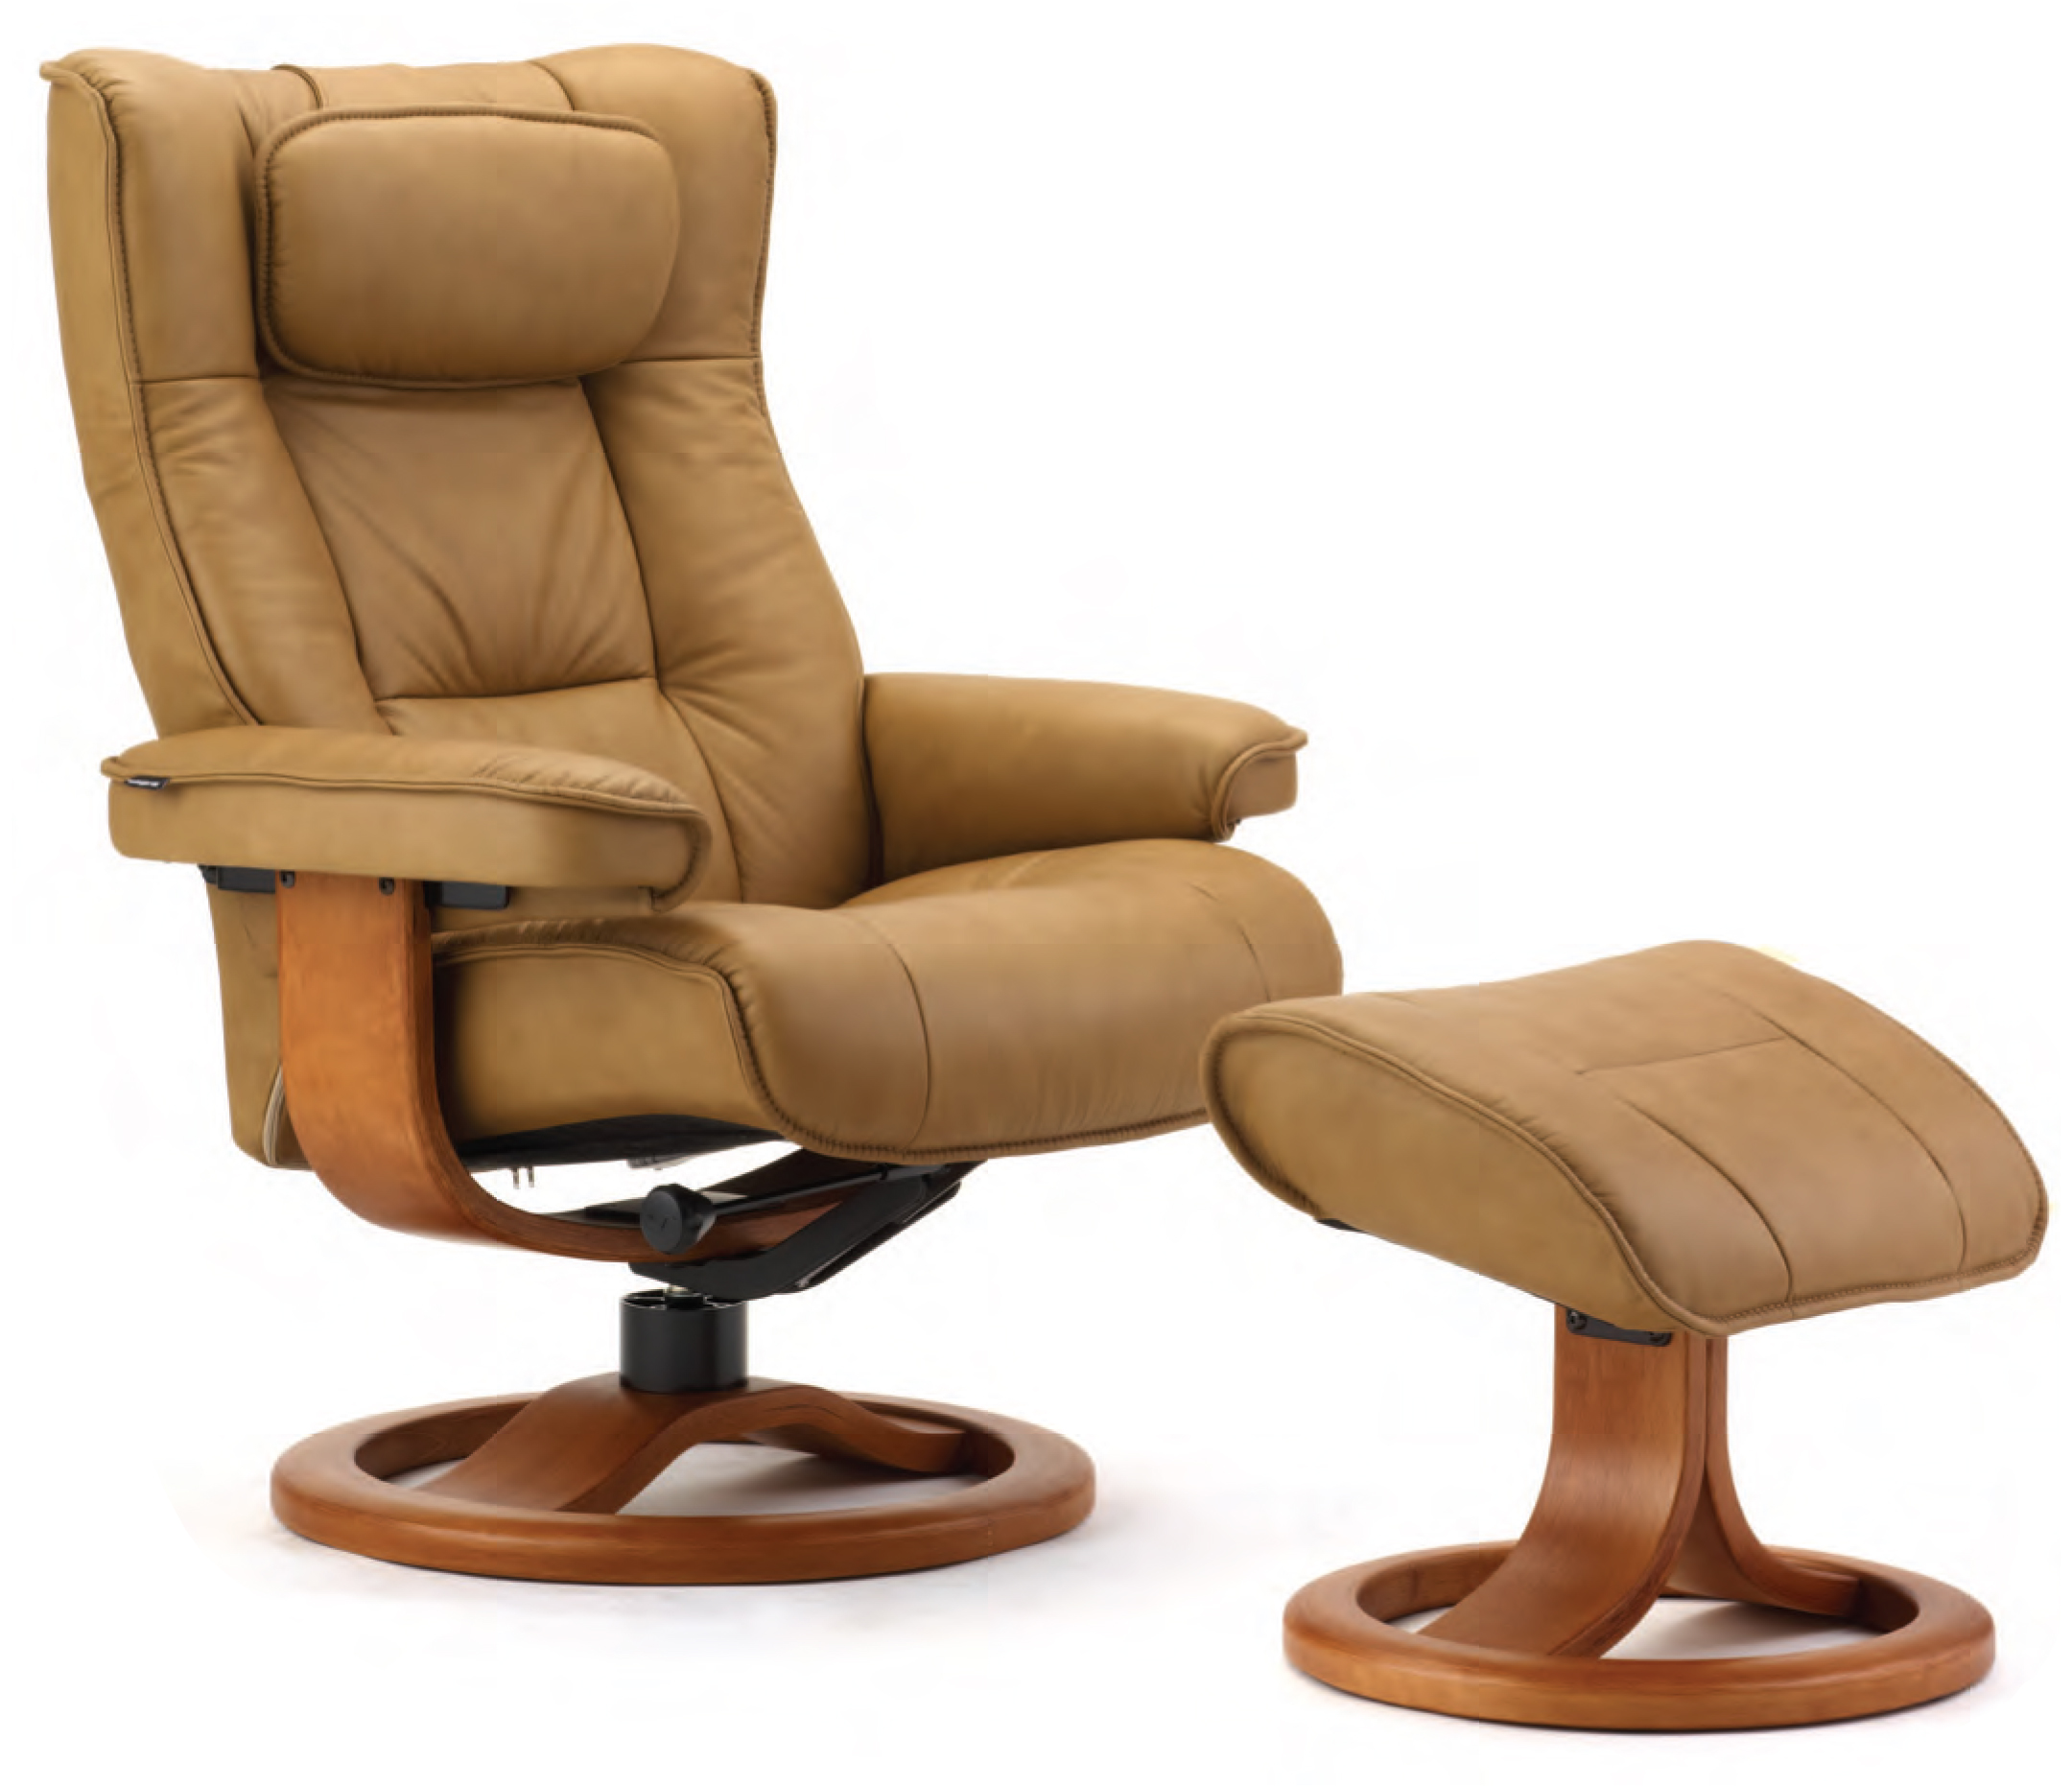 Fjords Regent Ergonomic Leather Recliner Chair Ottoman